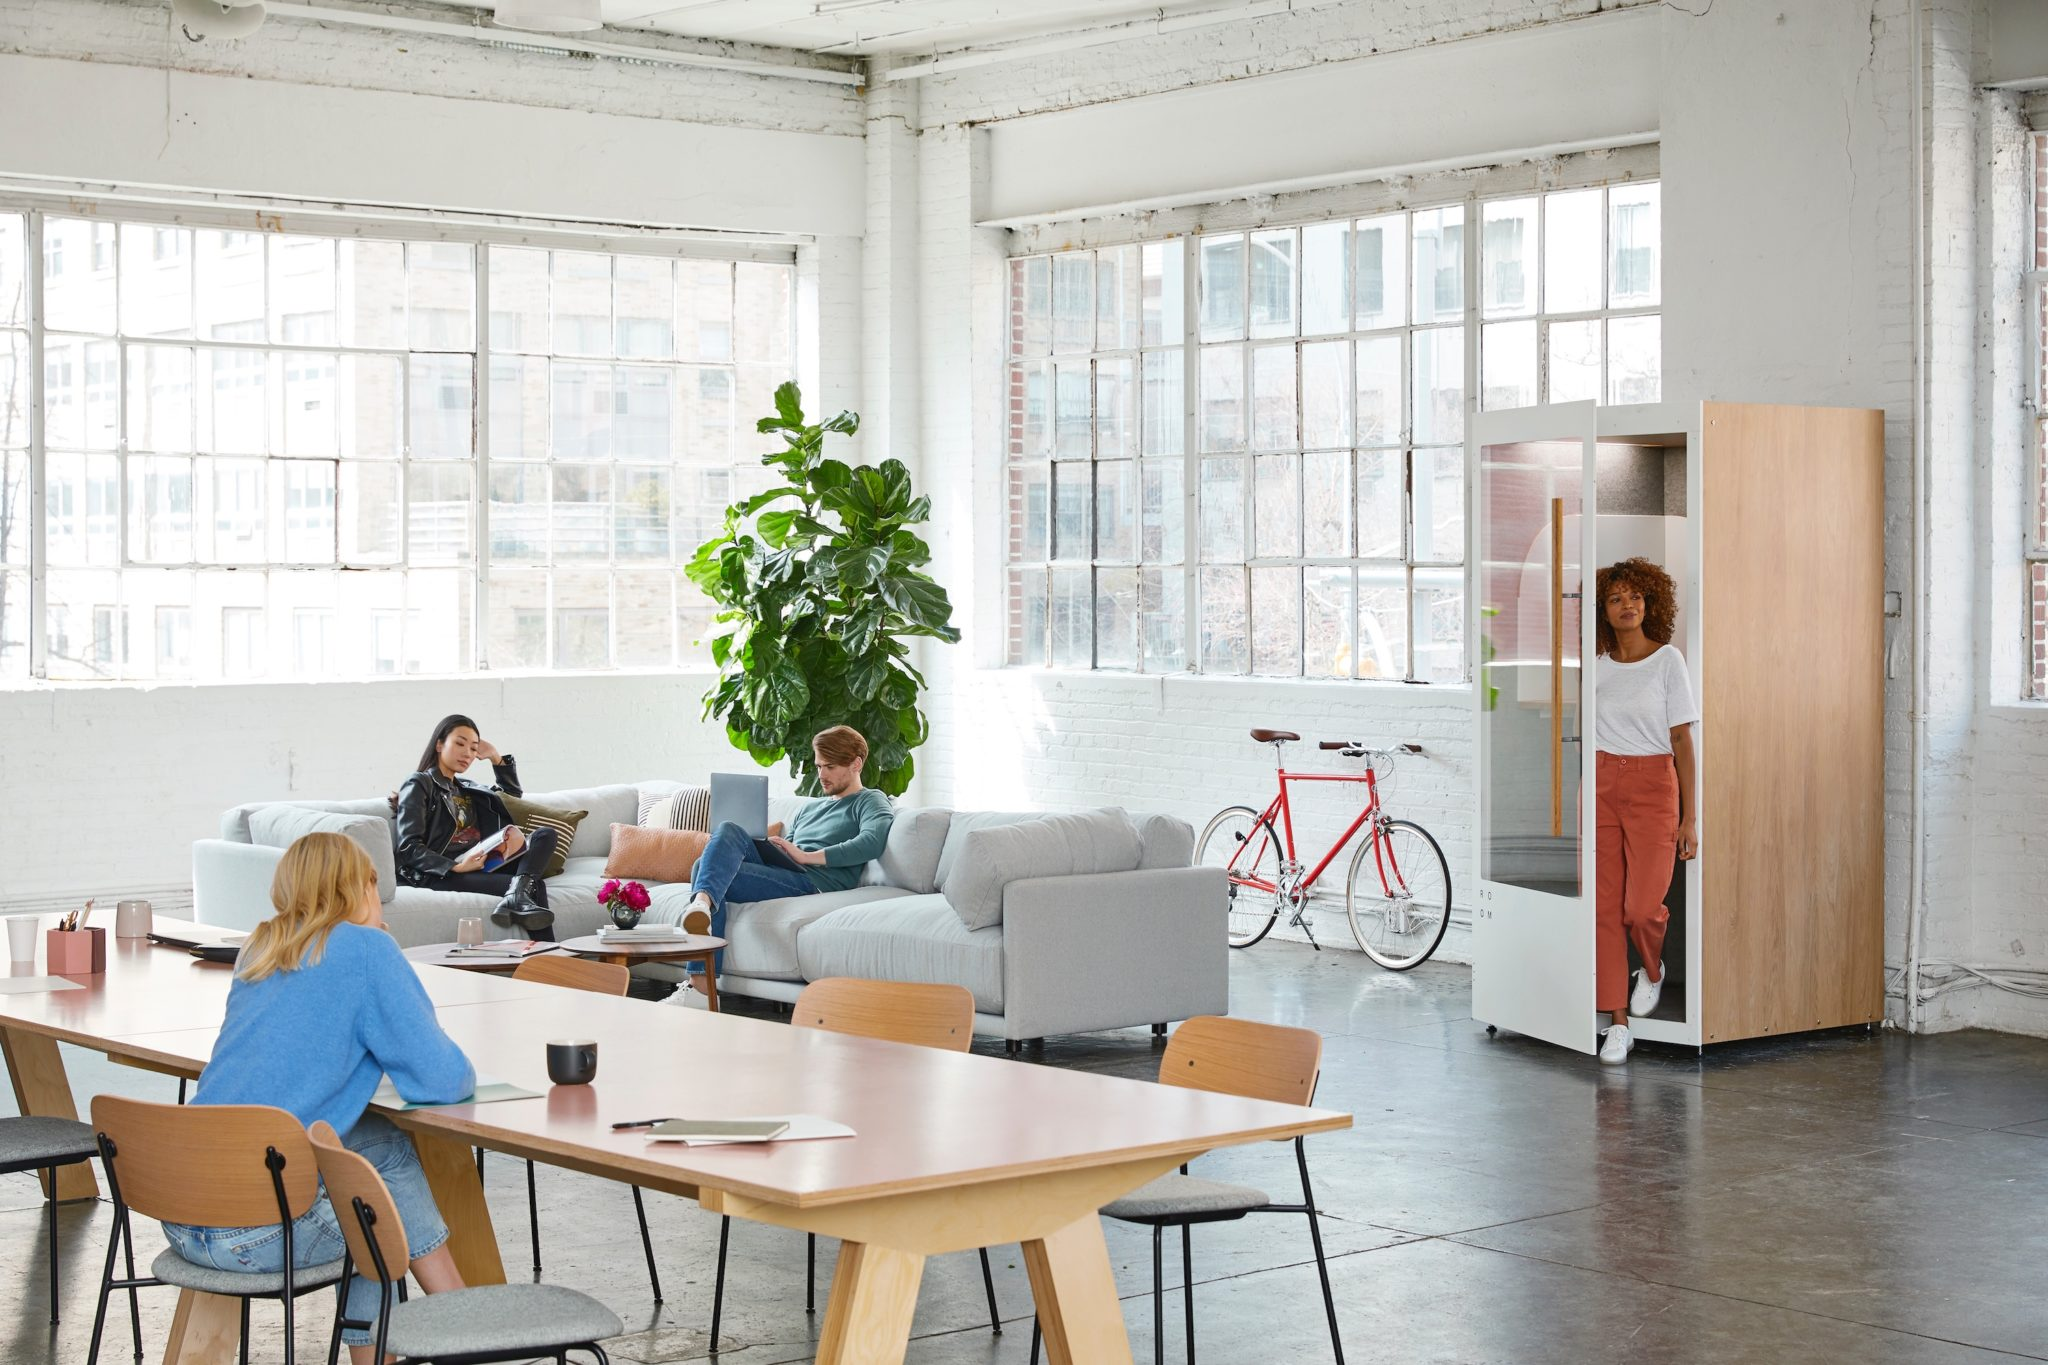 guiding principles for coworking